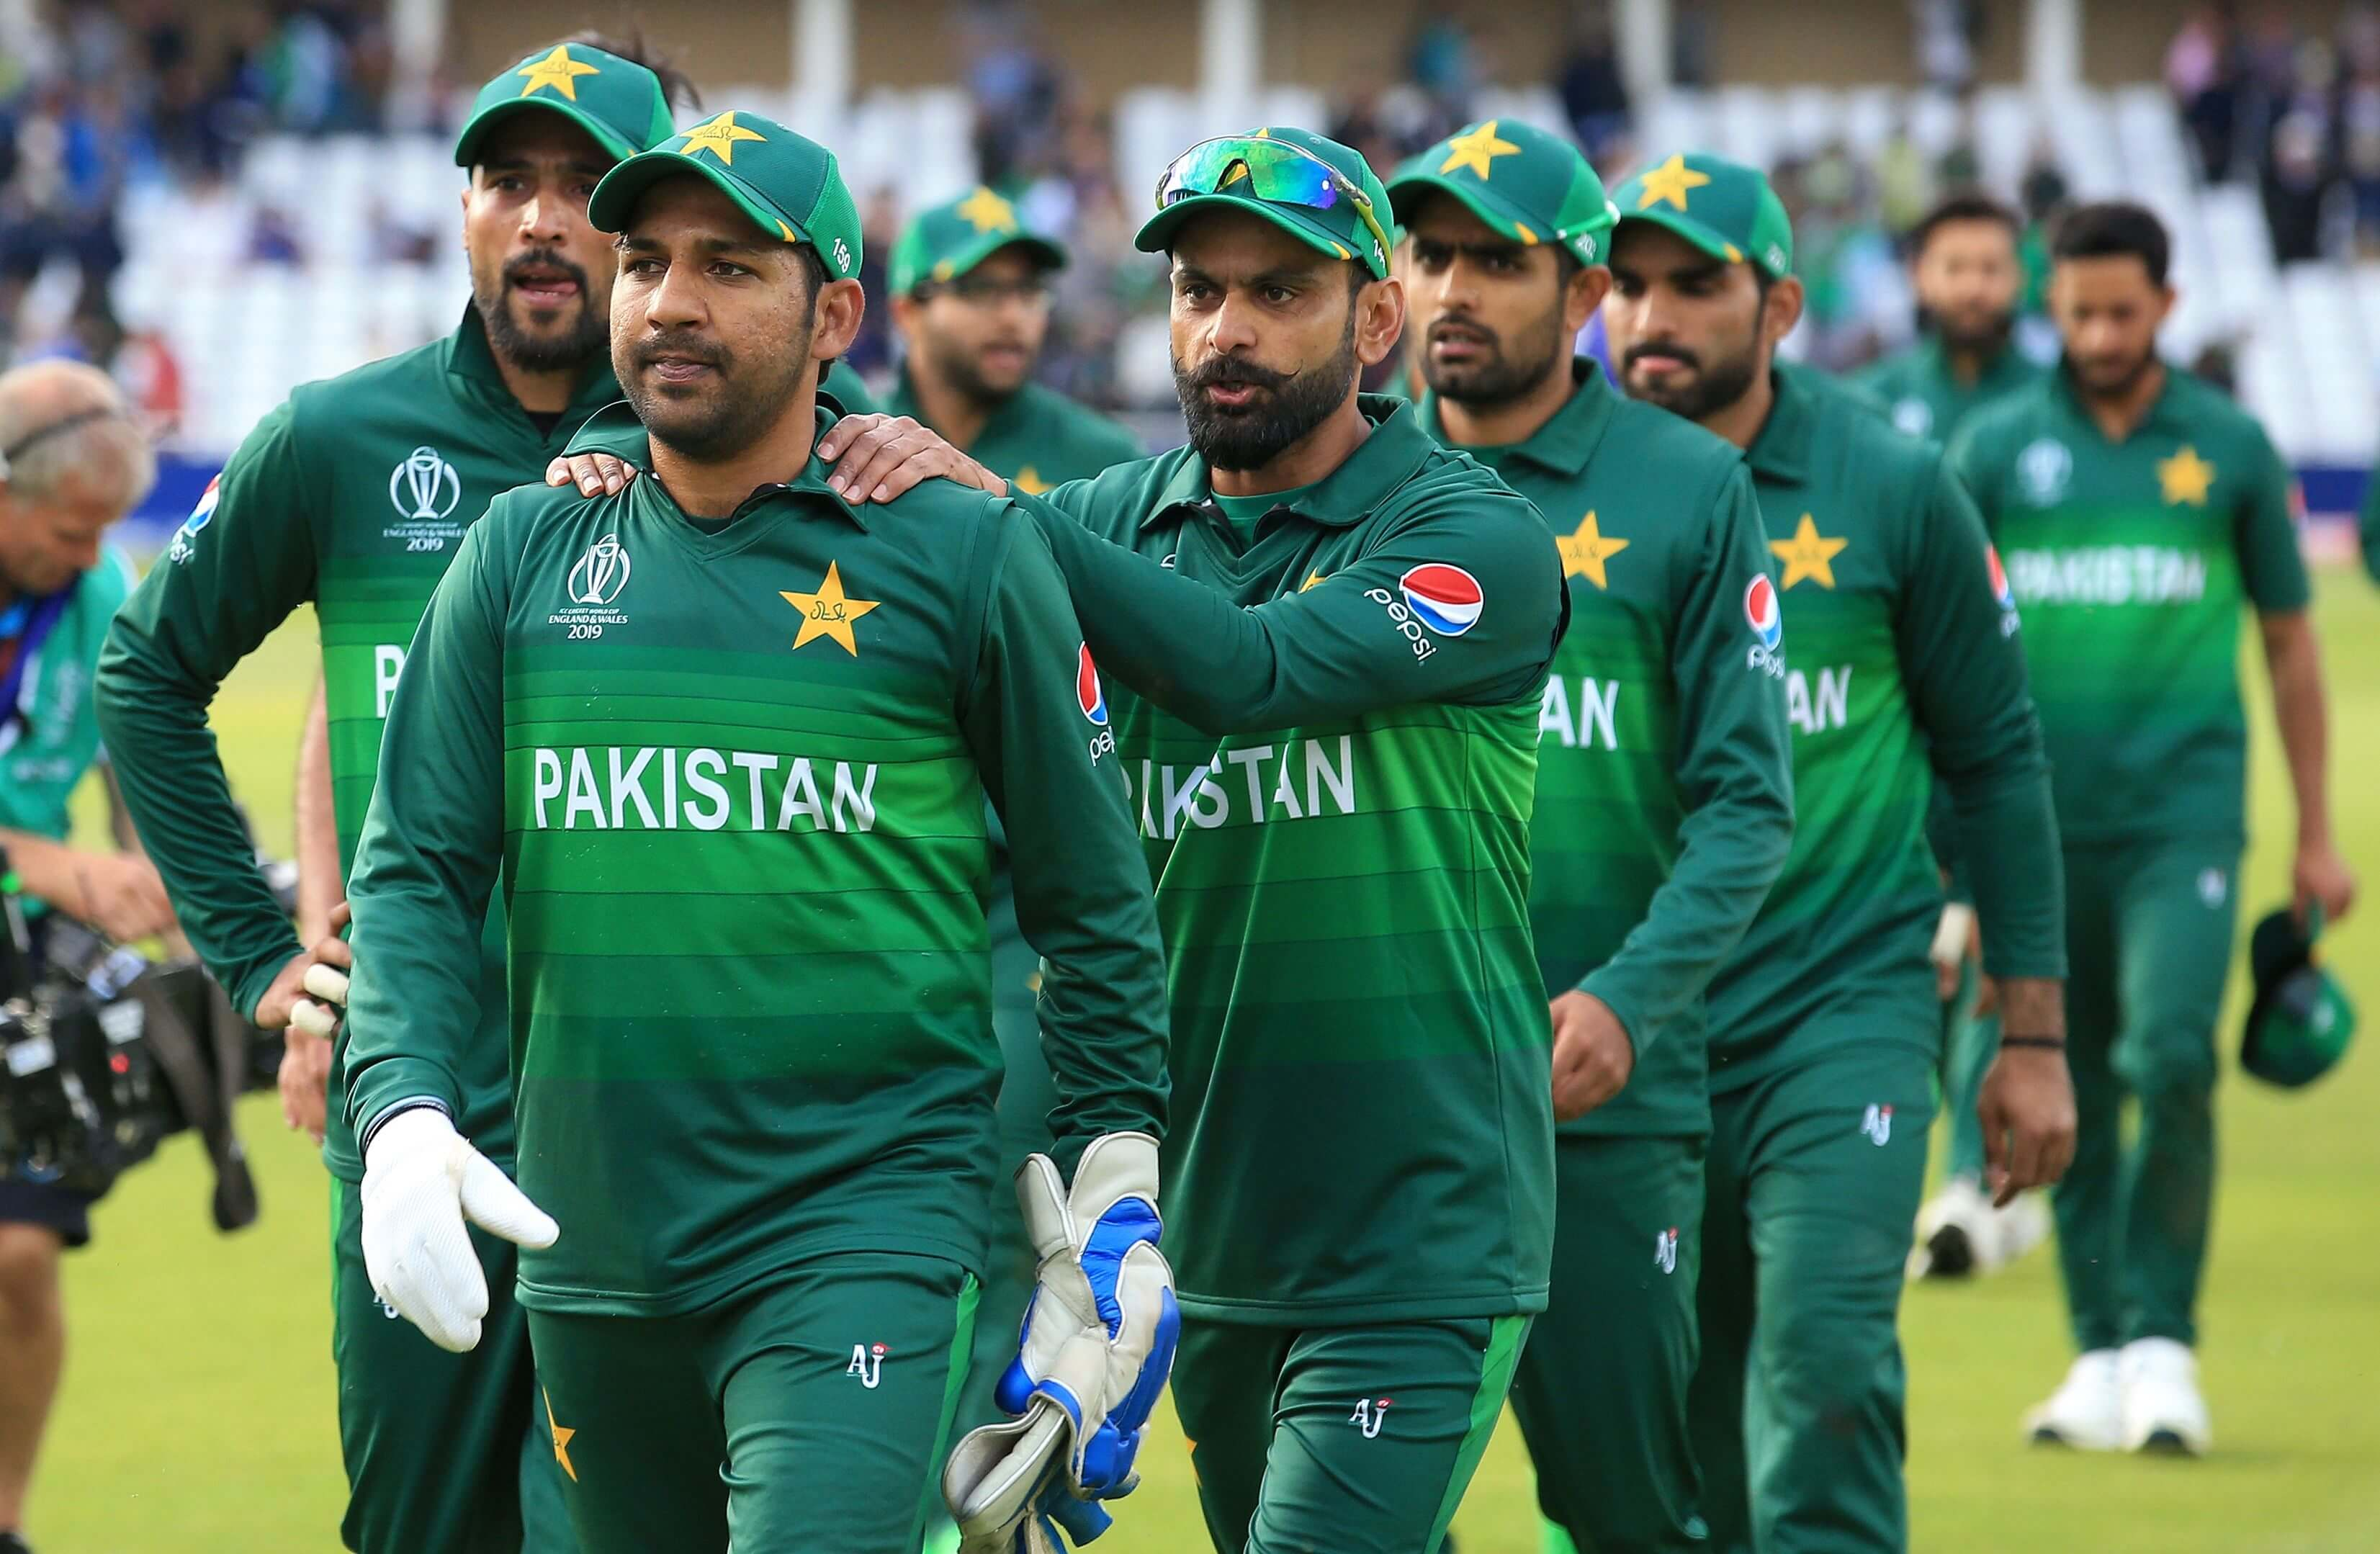 pakistancricketteamsettoleaveforenglandonjune28toplay3testsand3t20is